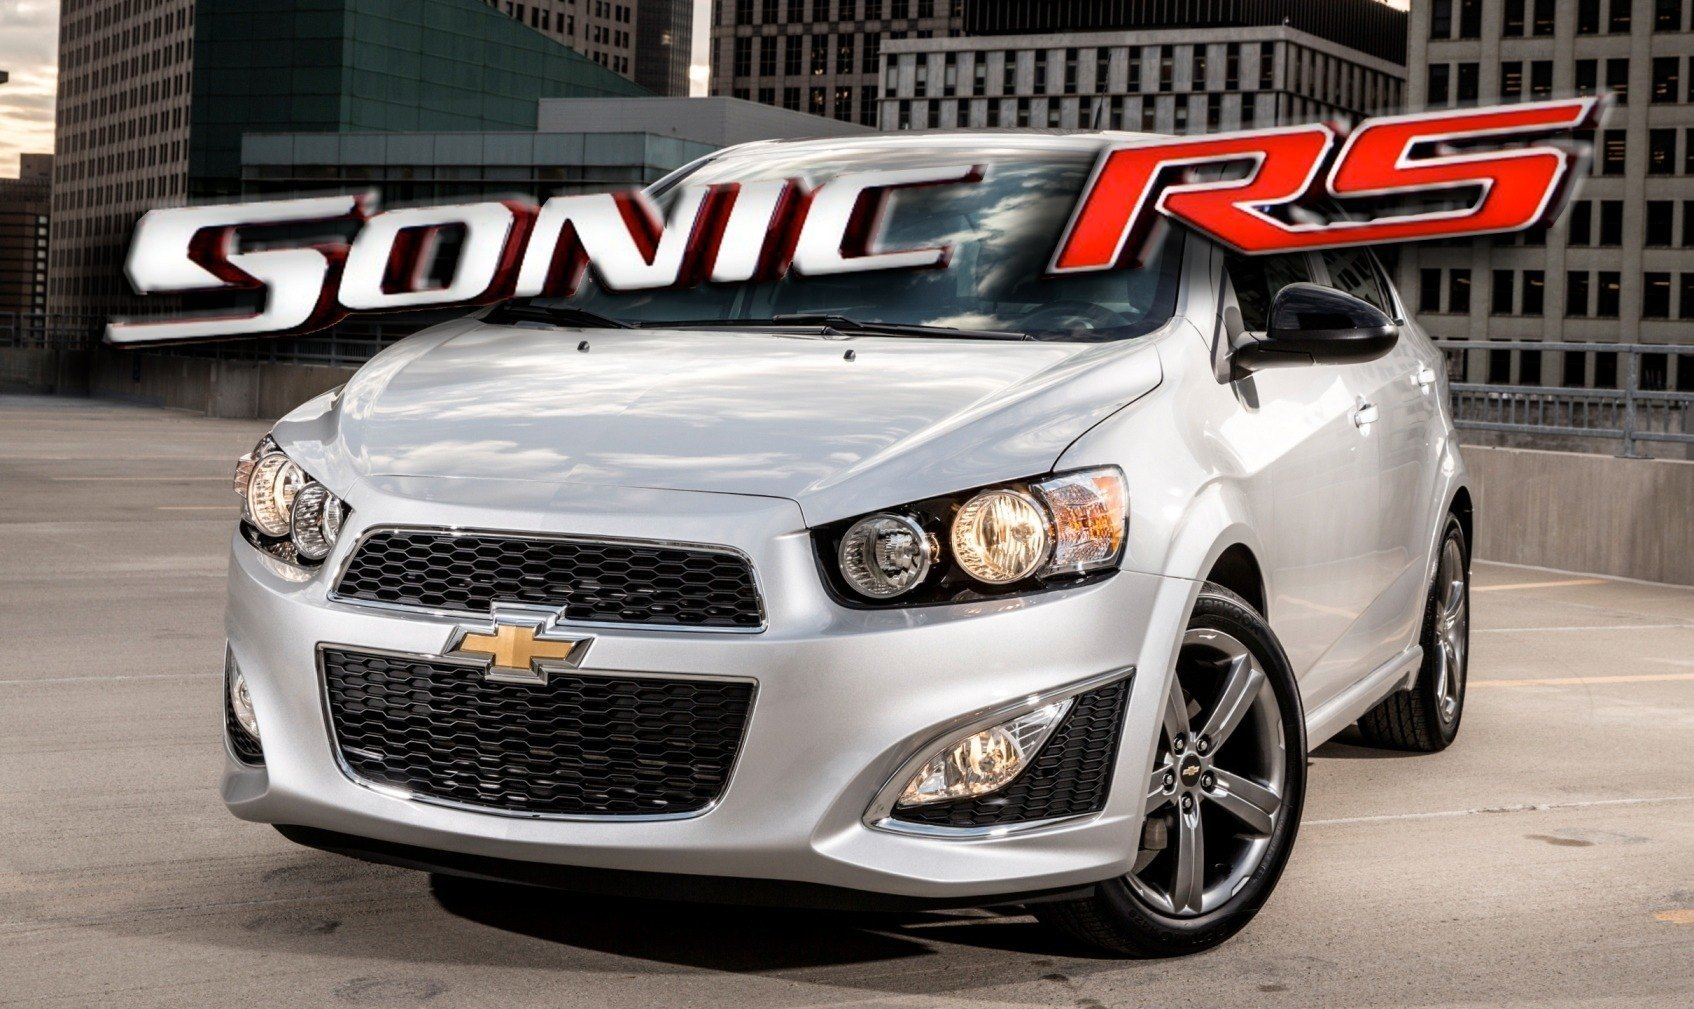 Chevy Sonic Rs Sedan And Ltz Dusk Join Cool Rs Hatch With Dark Rims Body Kit And Sportyggd Handling Tune